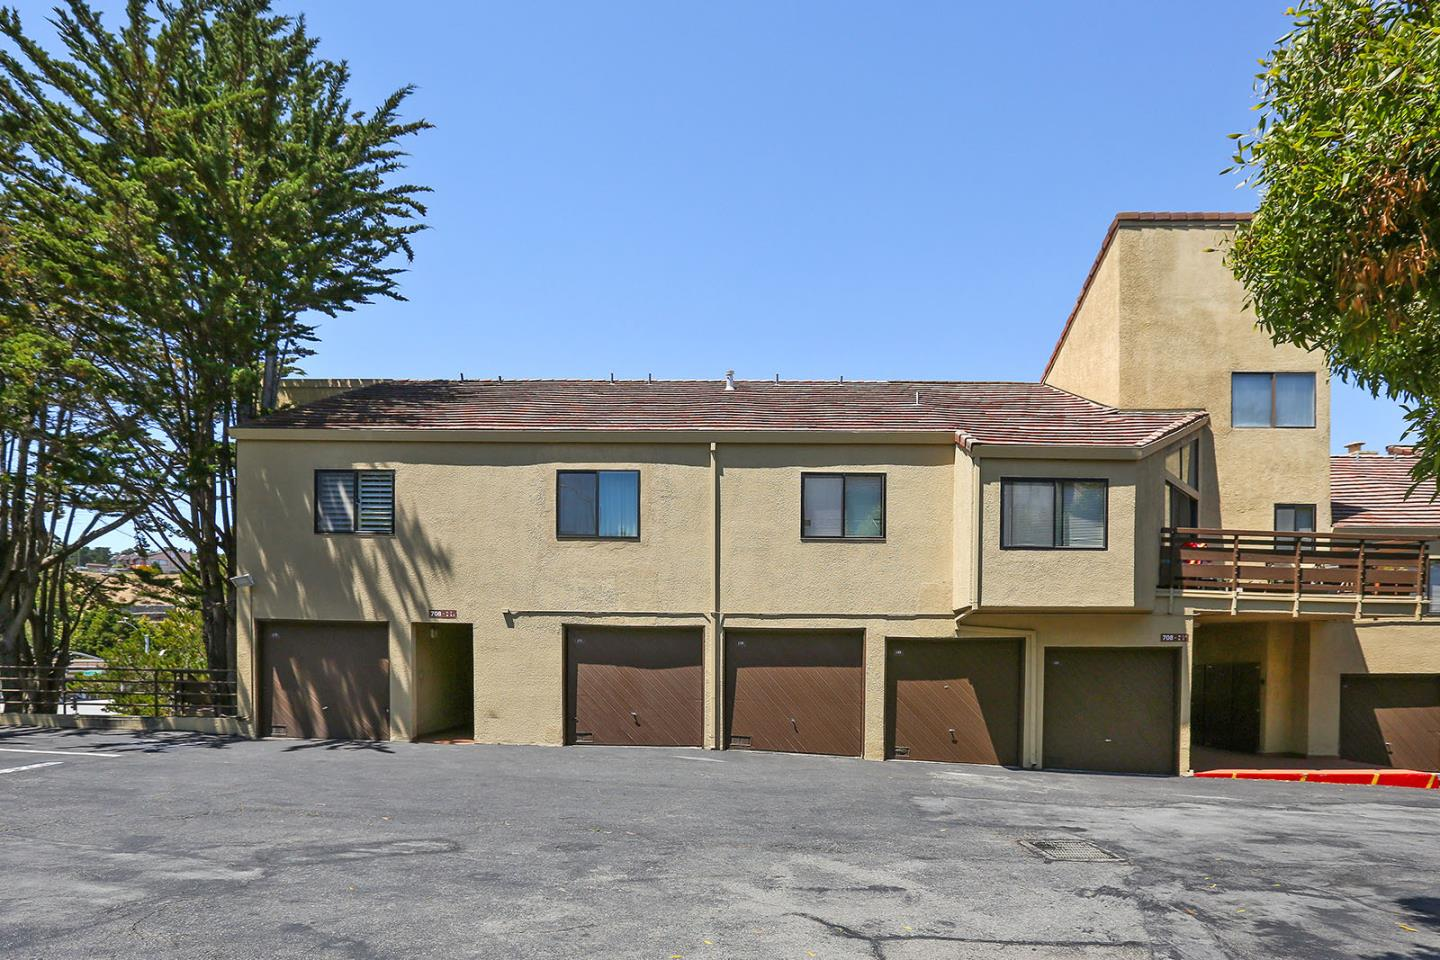 شقة بعمارة للـ Sale في 1 Appian Way 1 Appian Way South San Francisco, California 94080 United States